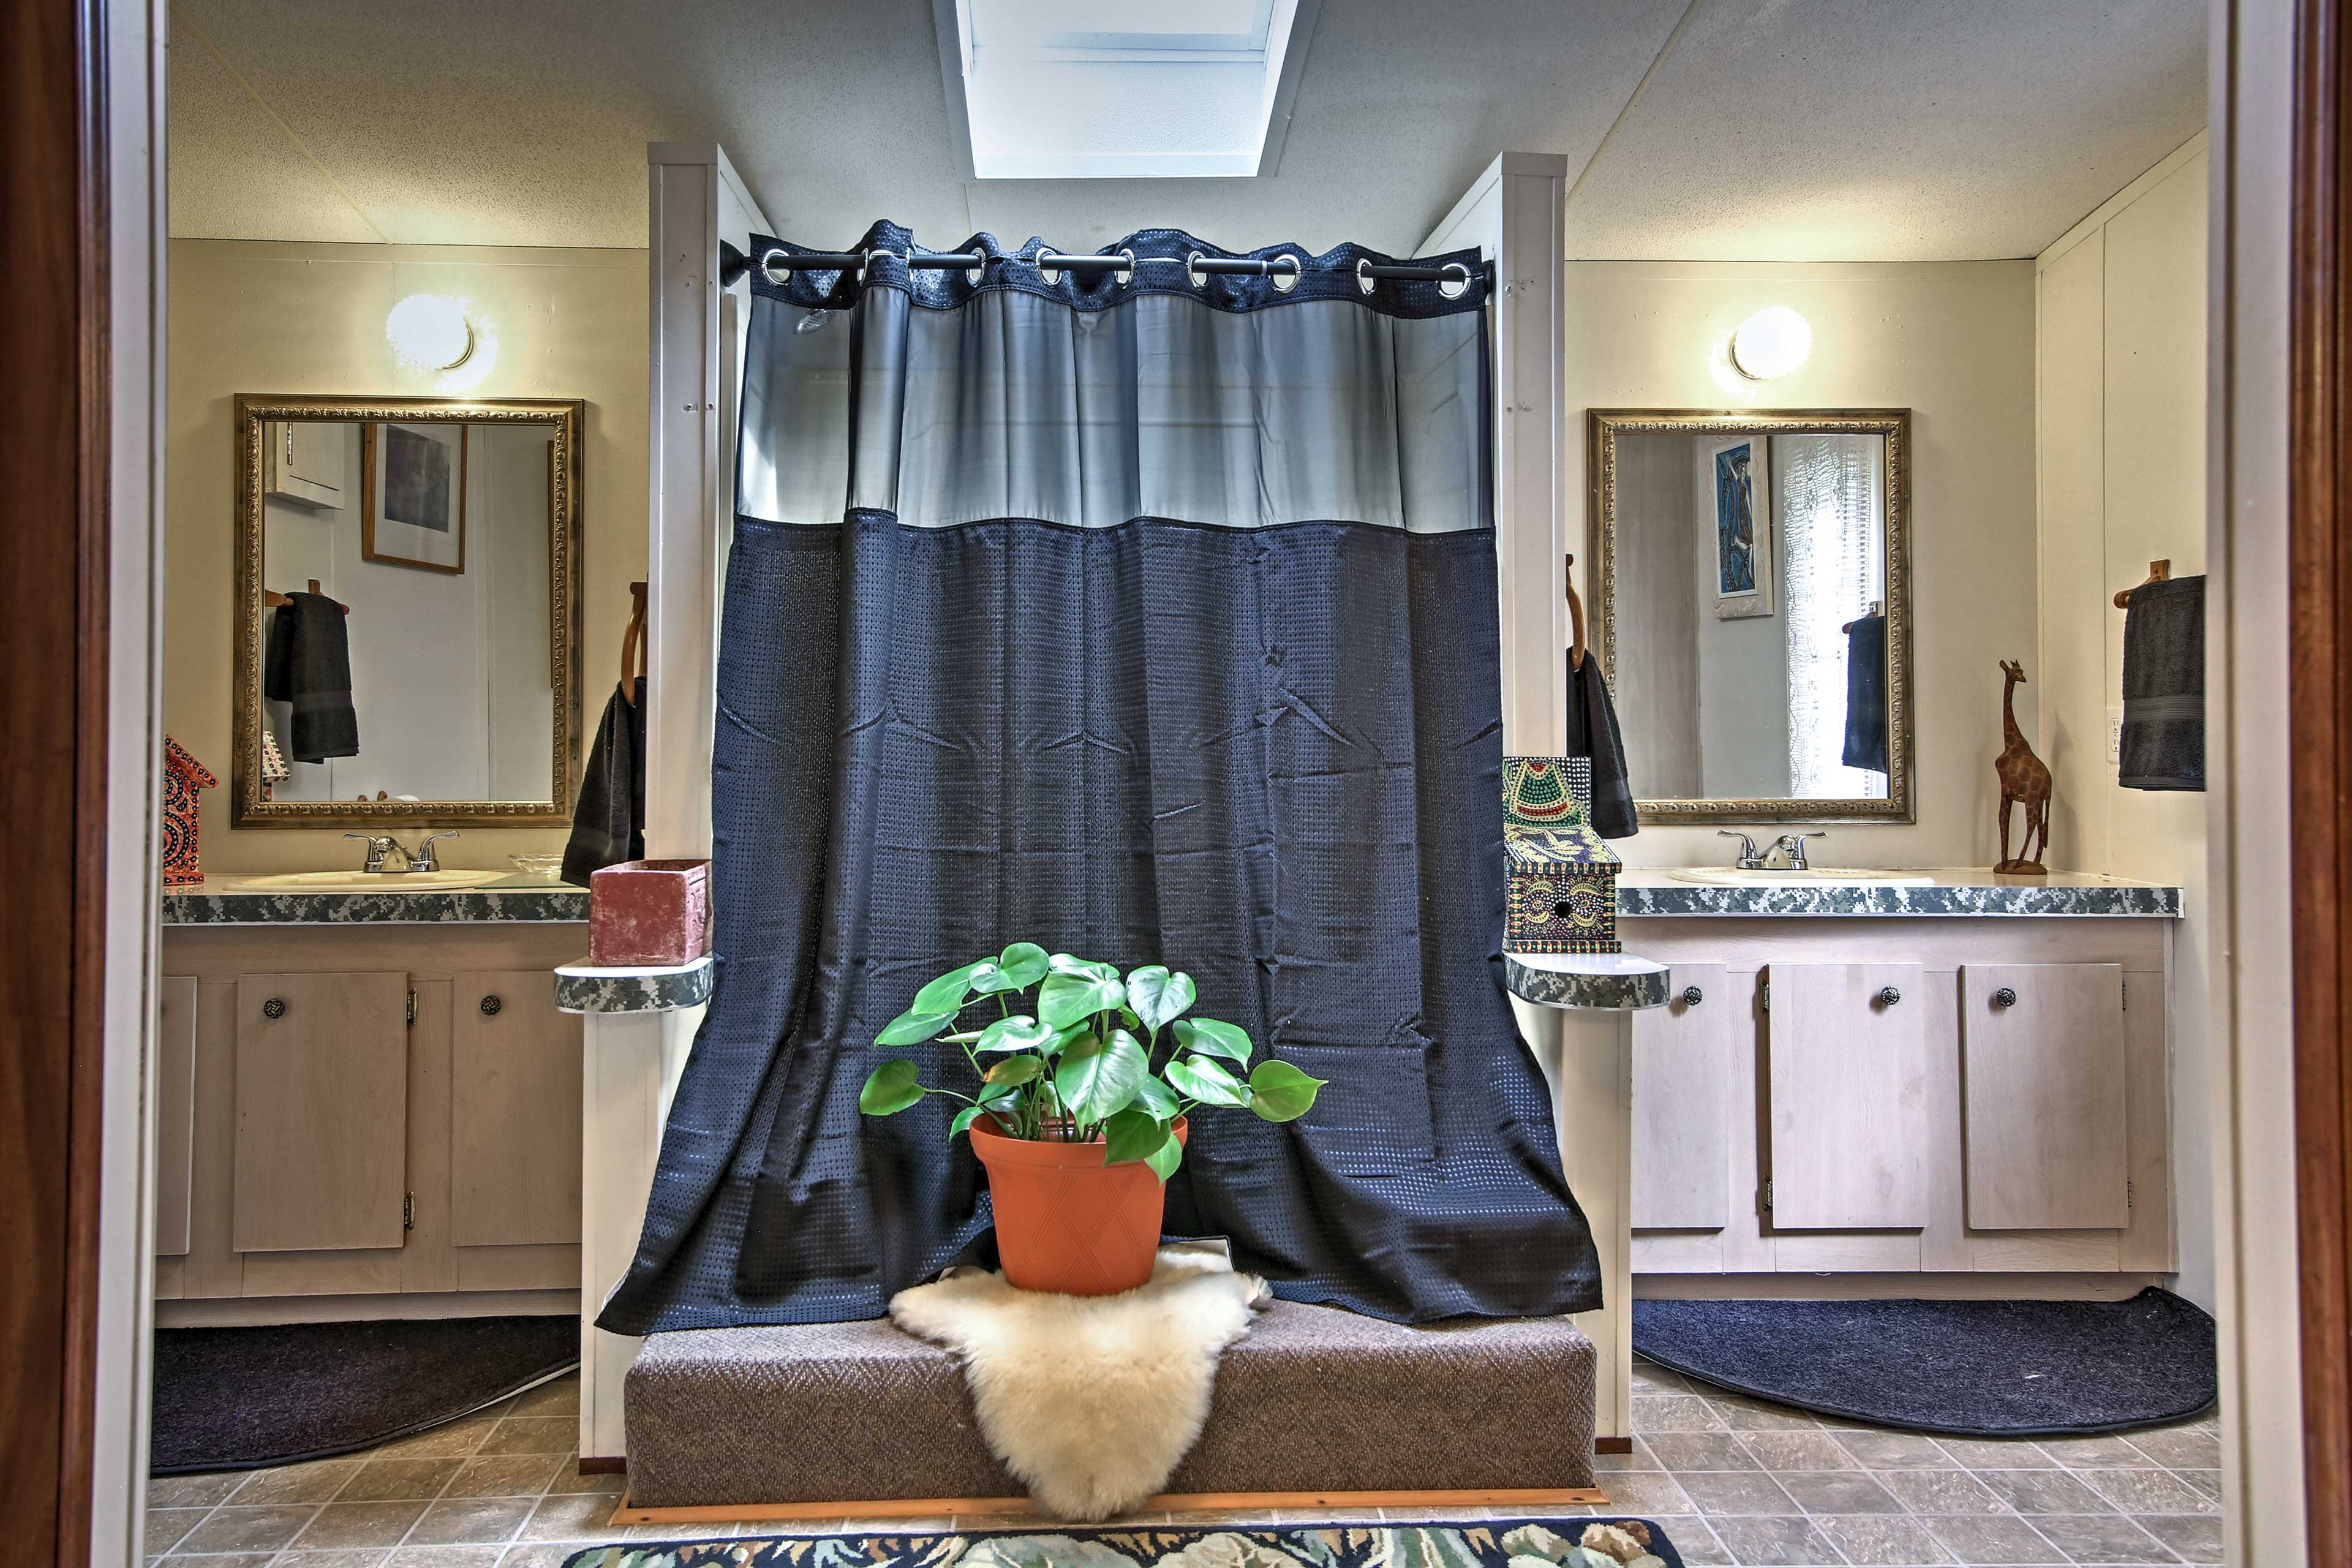 The master bathroom offers a spacious layout and dual vanities.